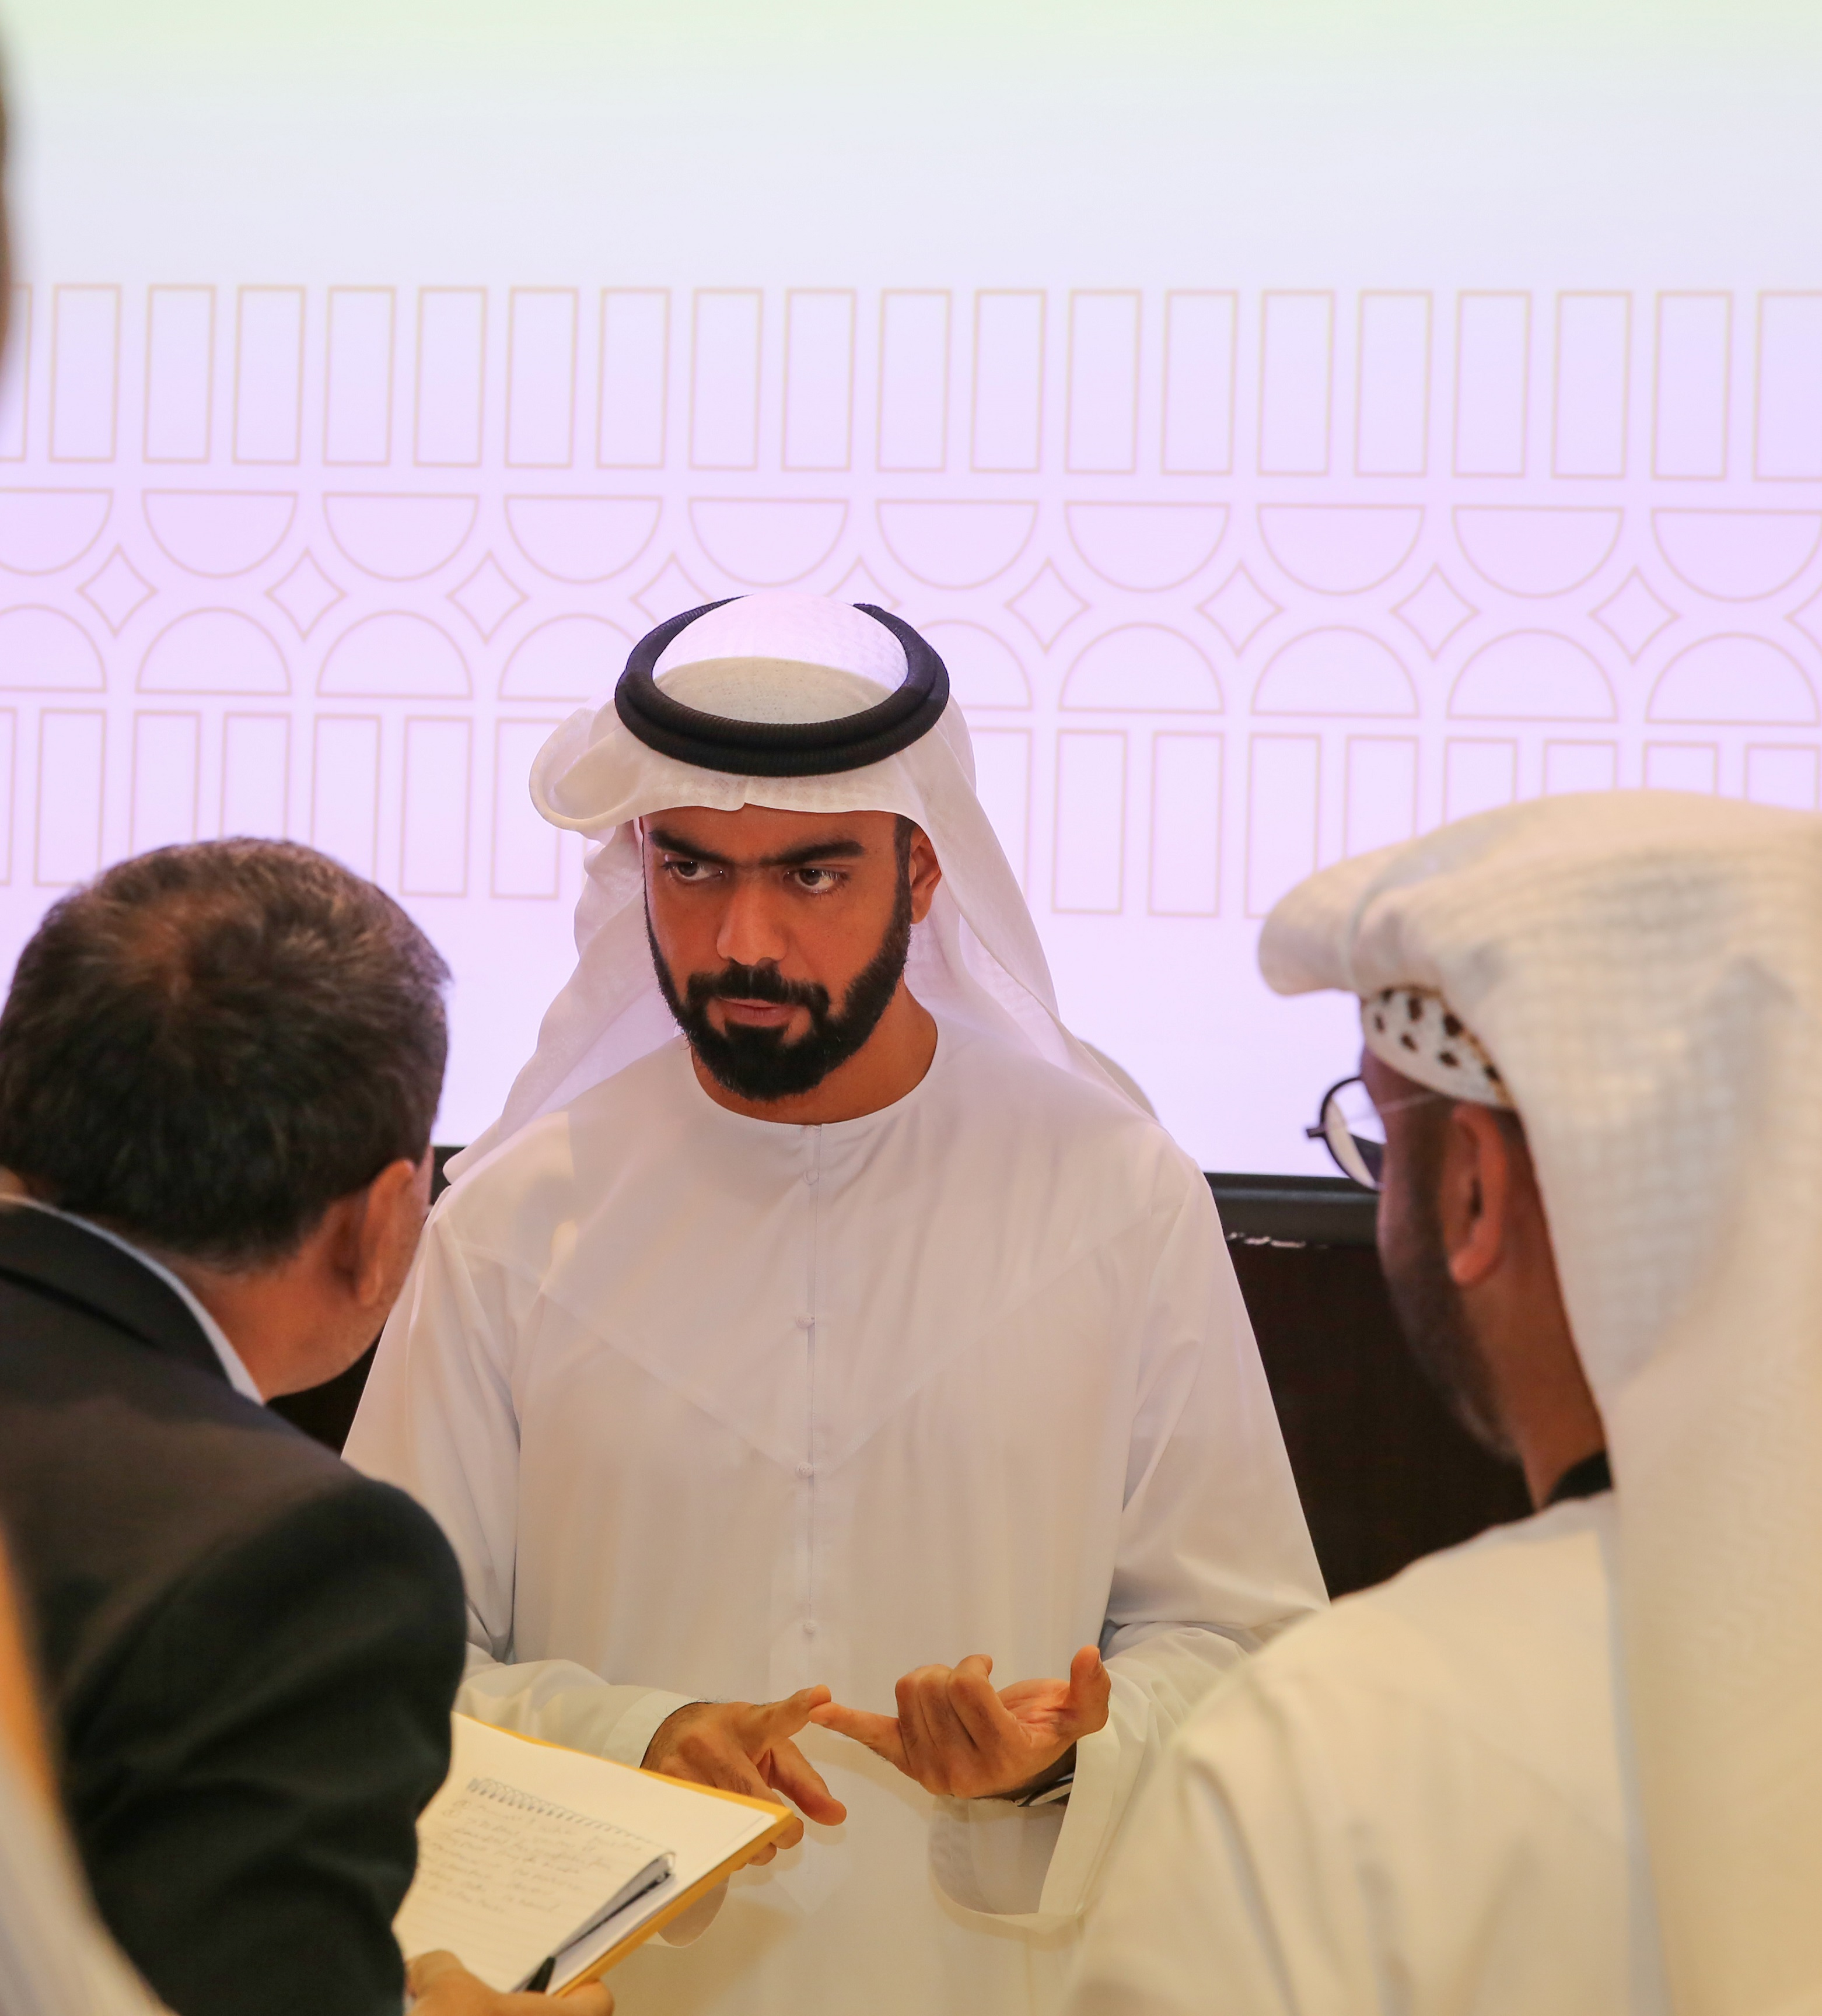 dct abu dhabi announces initiatives to drive tourism, sector investment 4